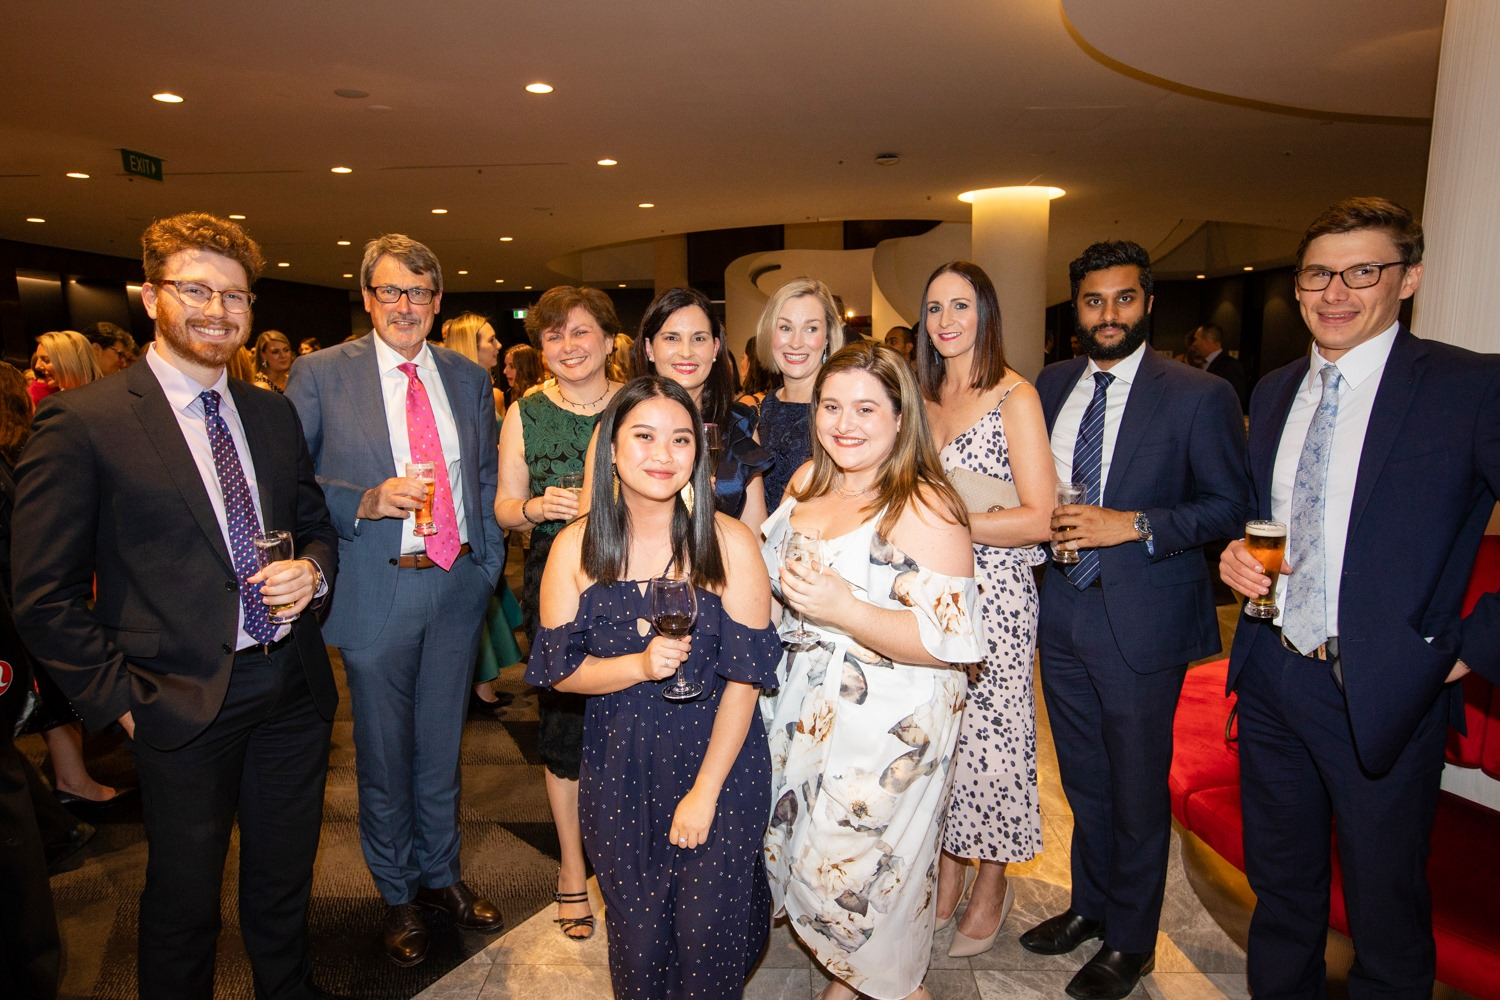 Thynne + Macartney celebrate women in the legal profession at the WLAQ 41st Annual Awards Dinner